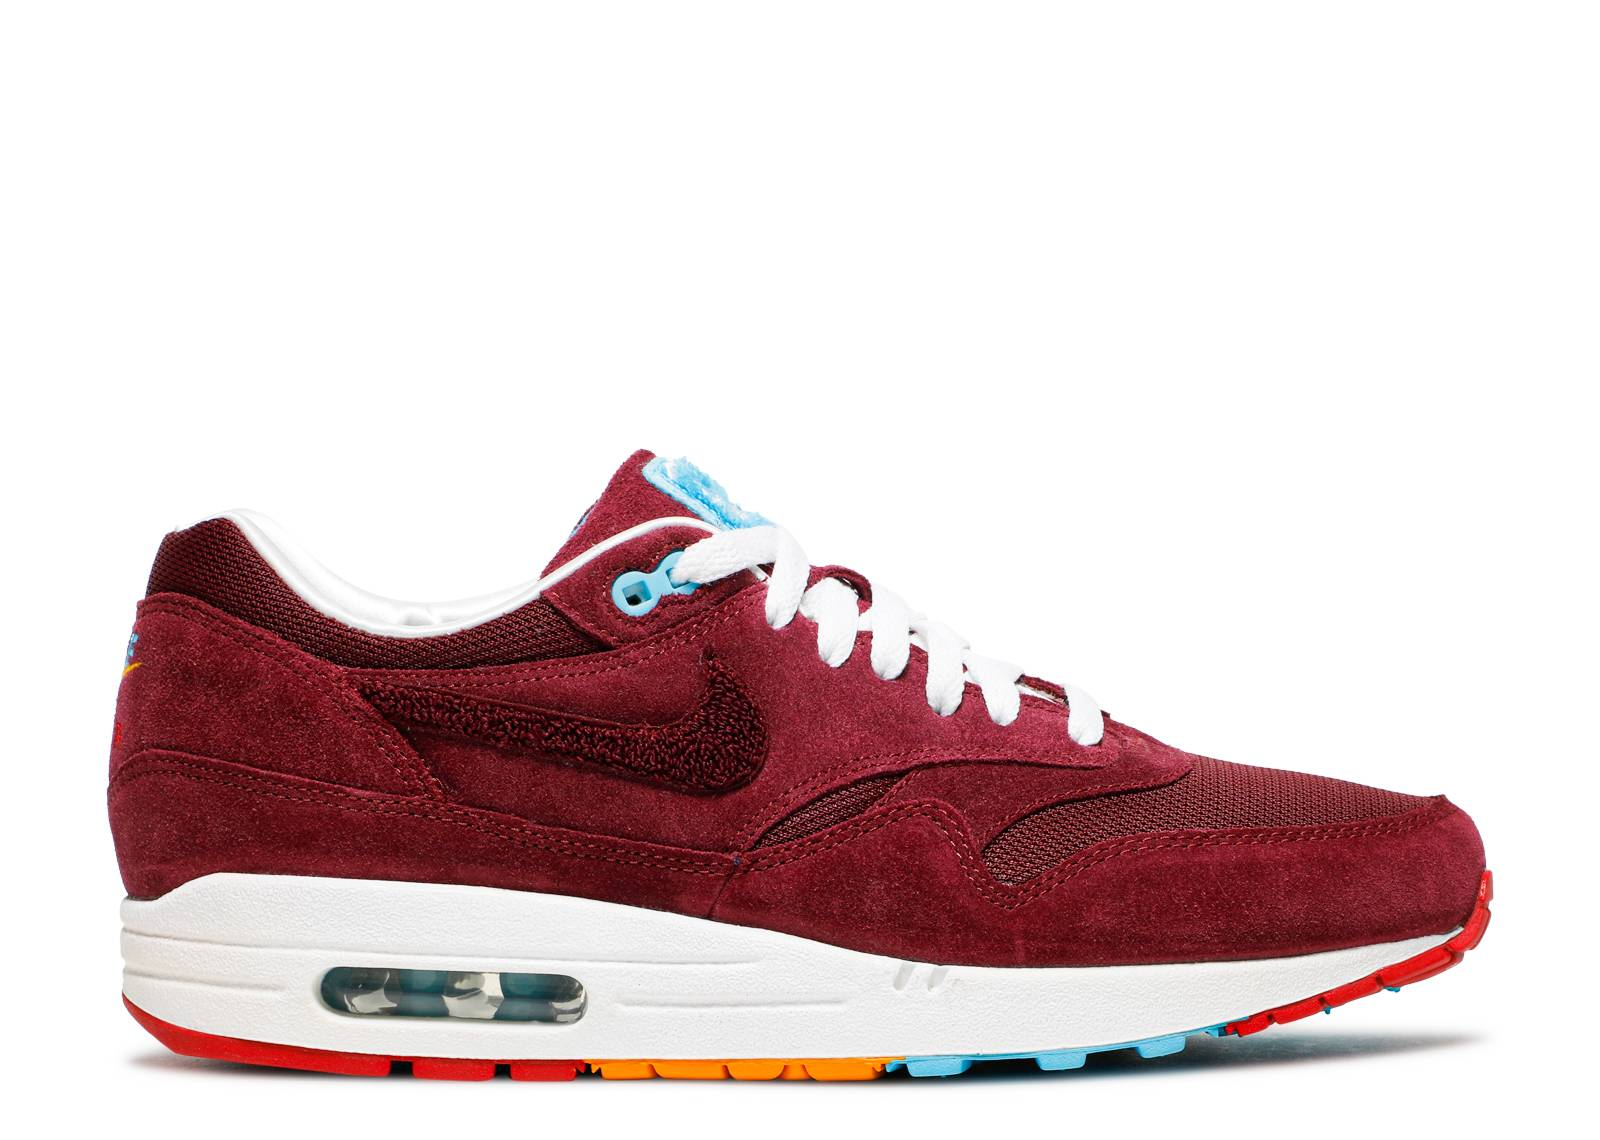 cff80be940 Air Max 1 Premium